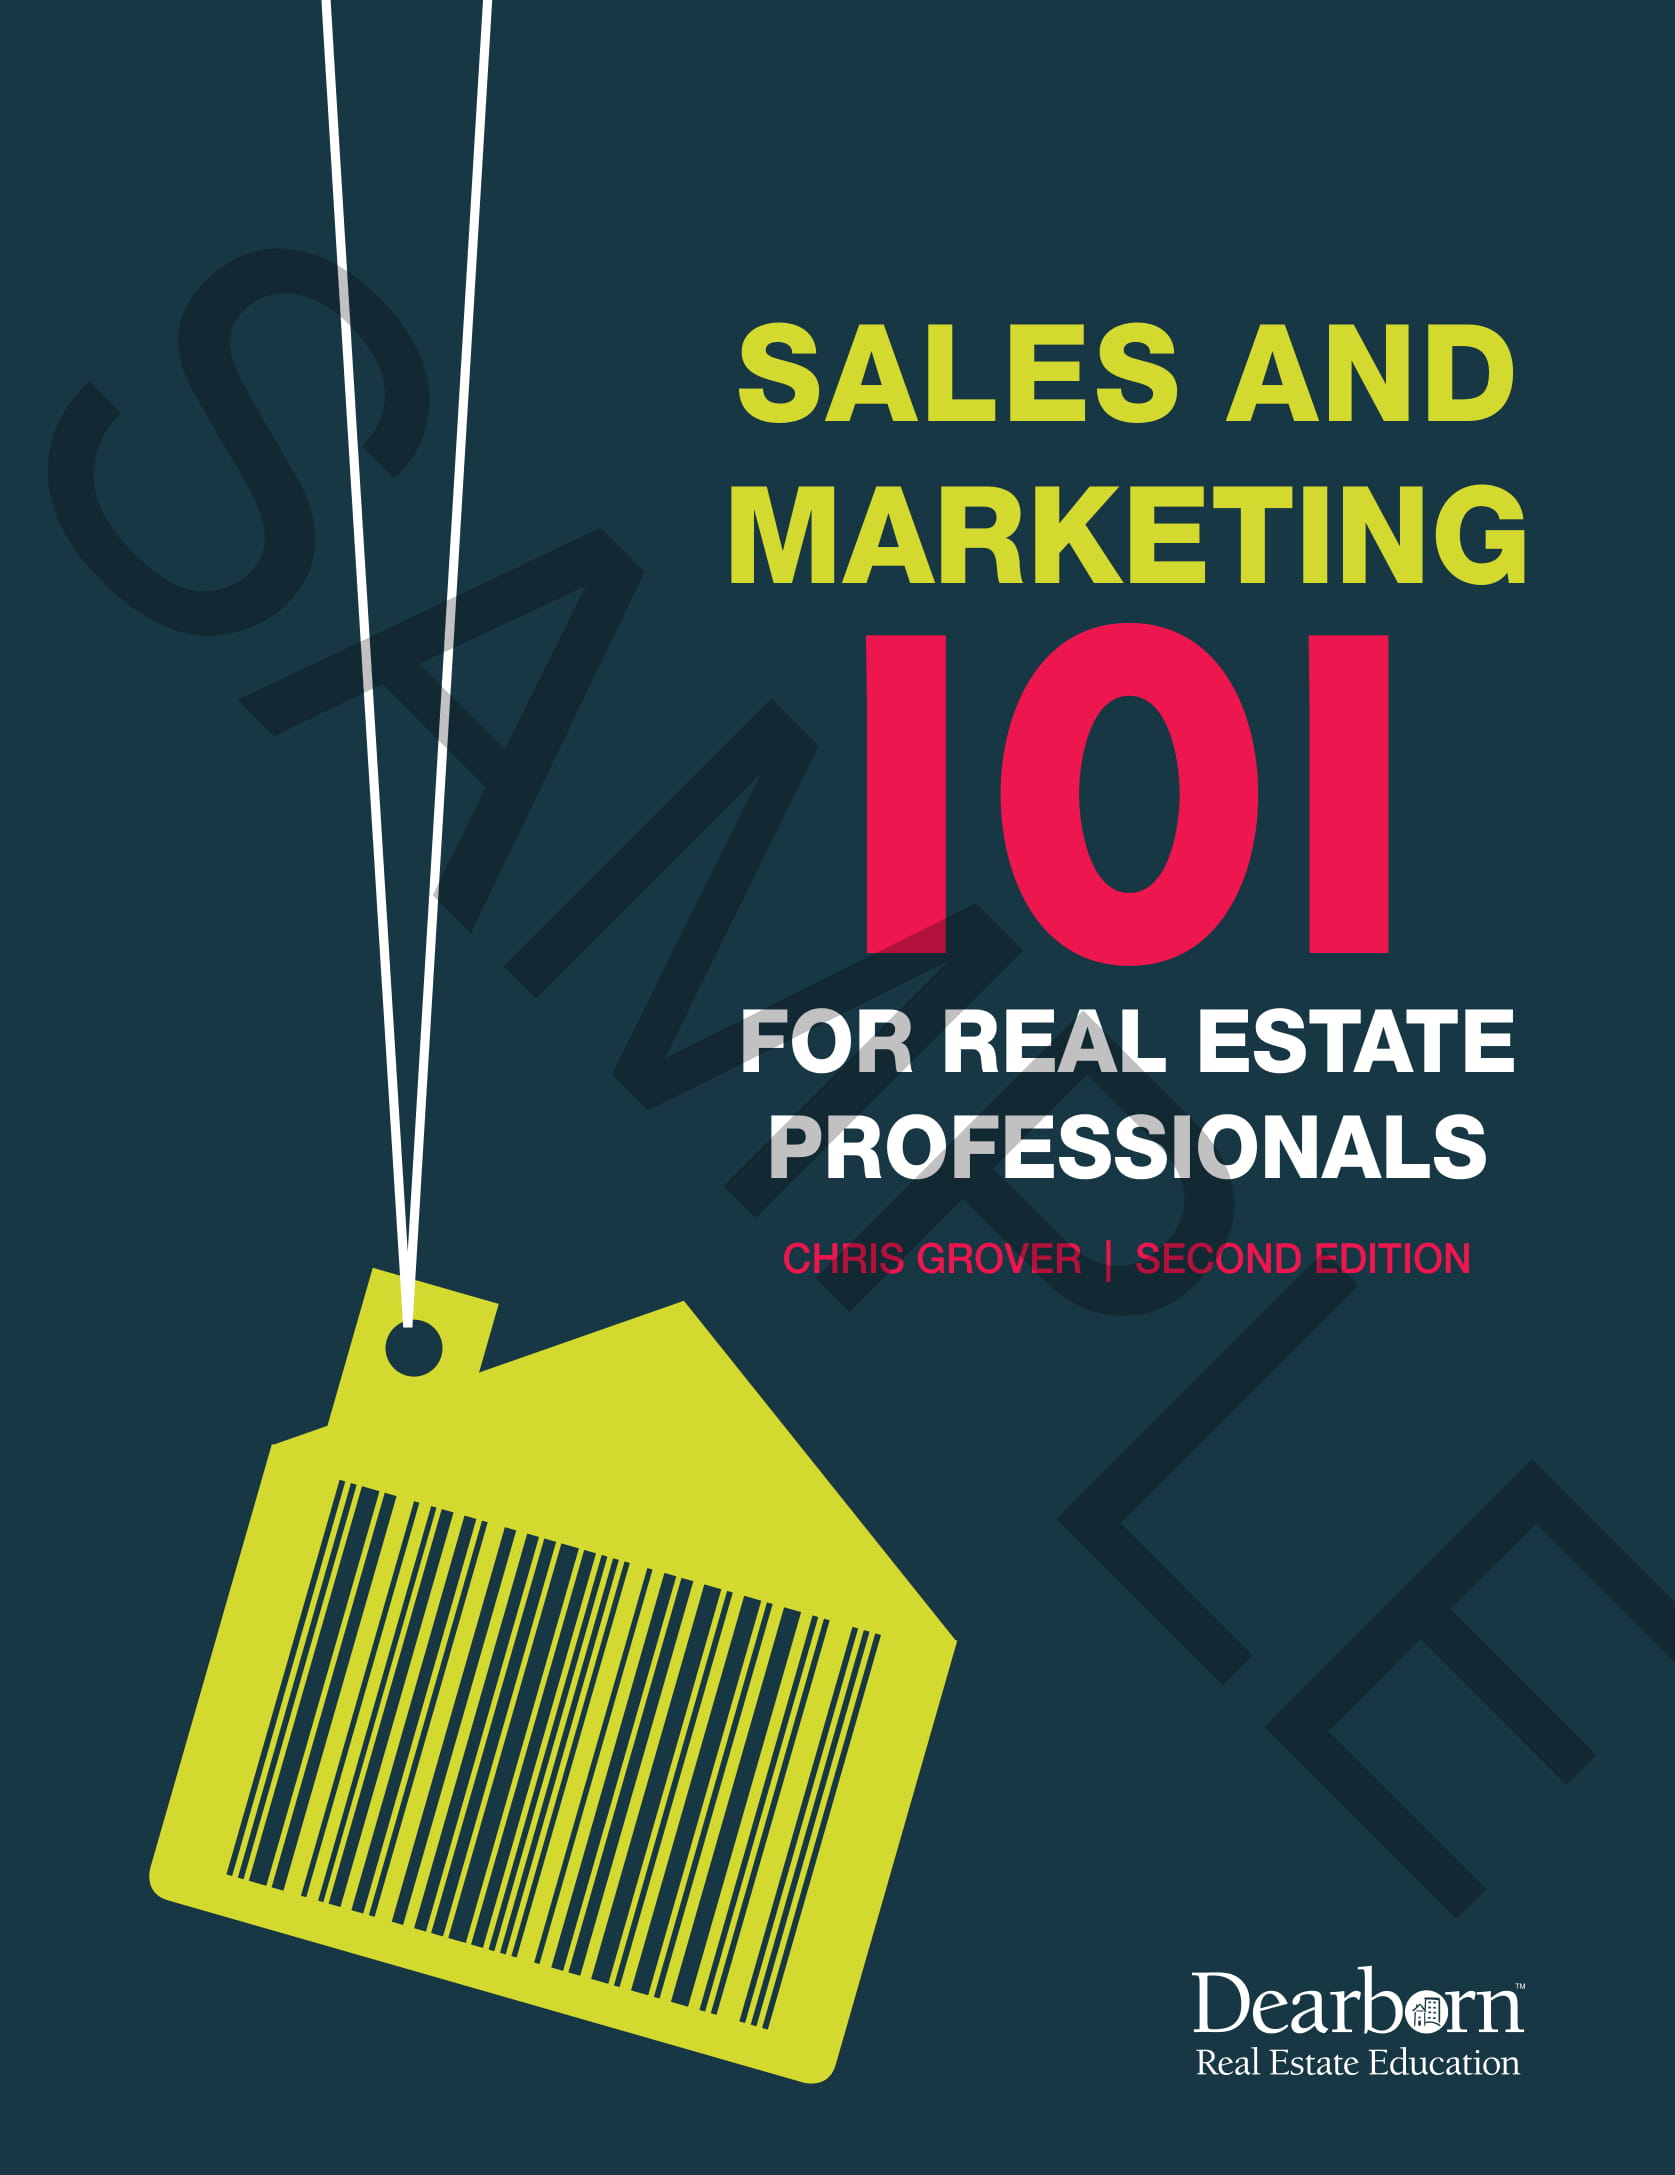 annual sales and marketing plan for real estate professionals example 01